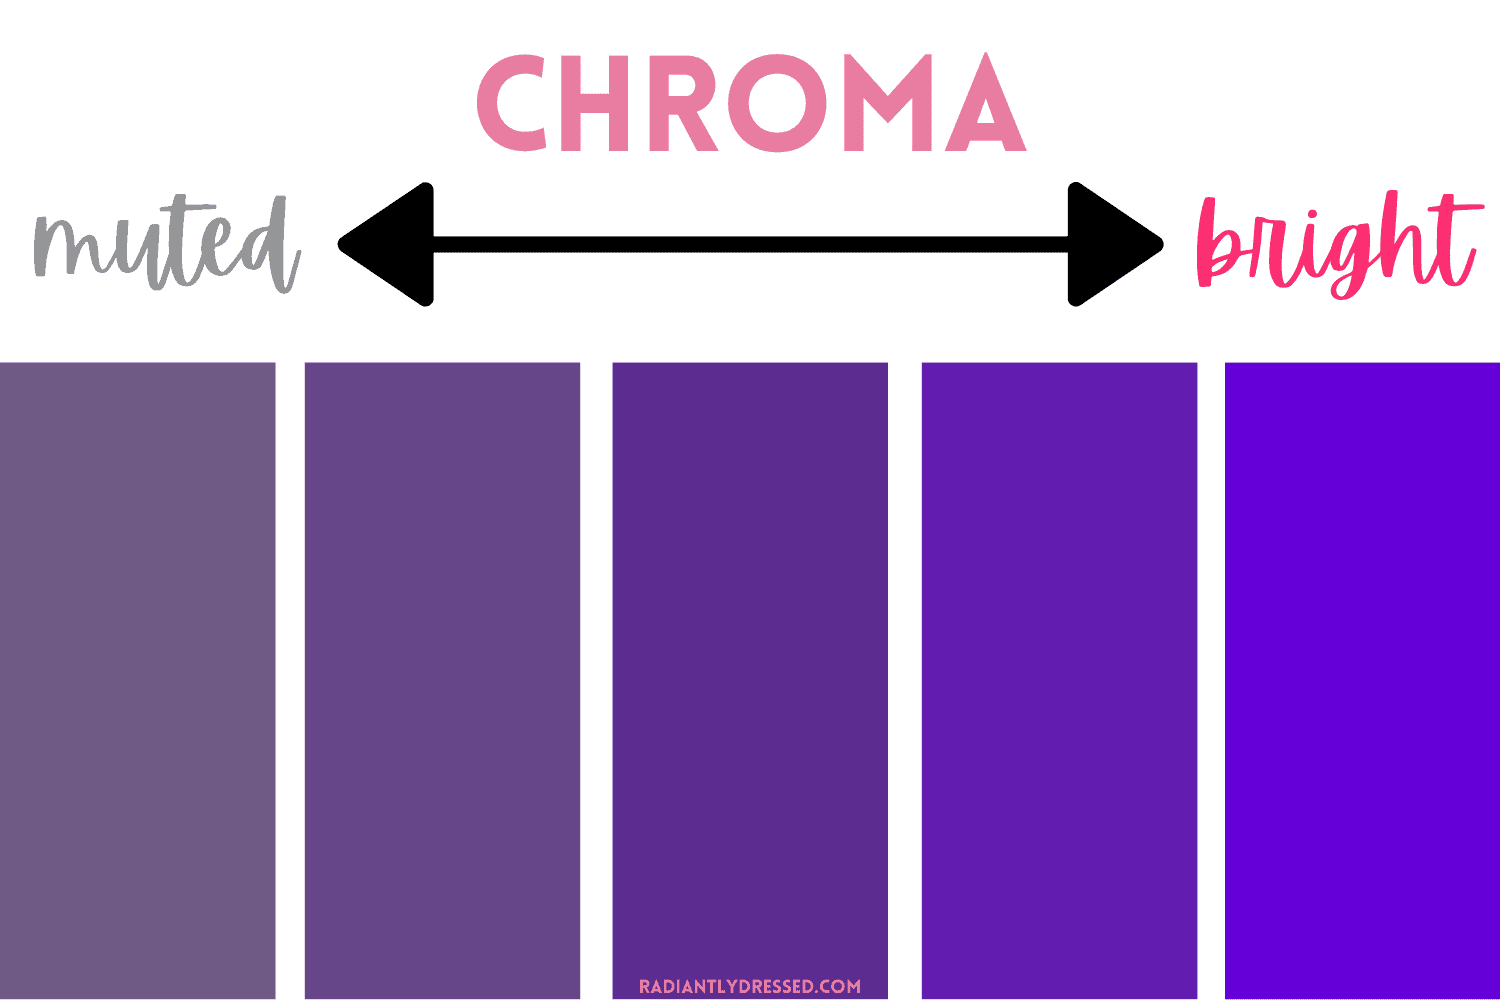 color theory chroma bright muted